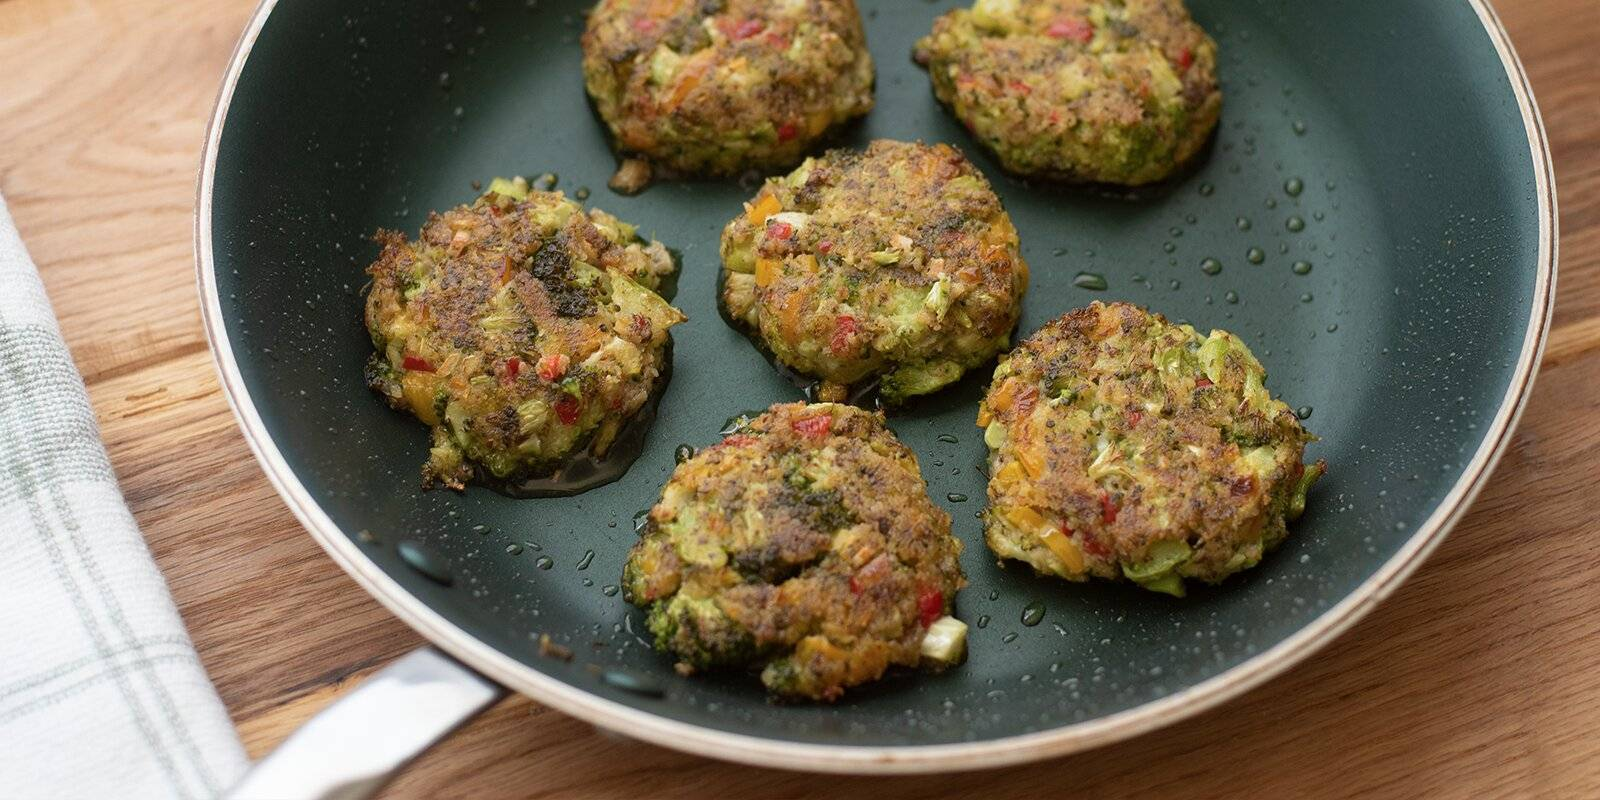 Six cooked veggie nuggets inside pan.